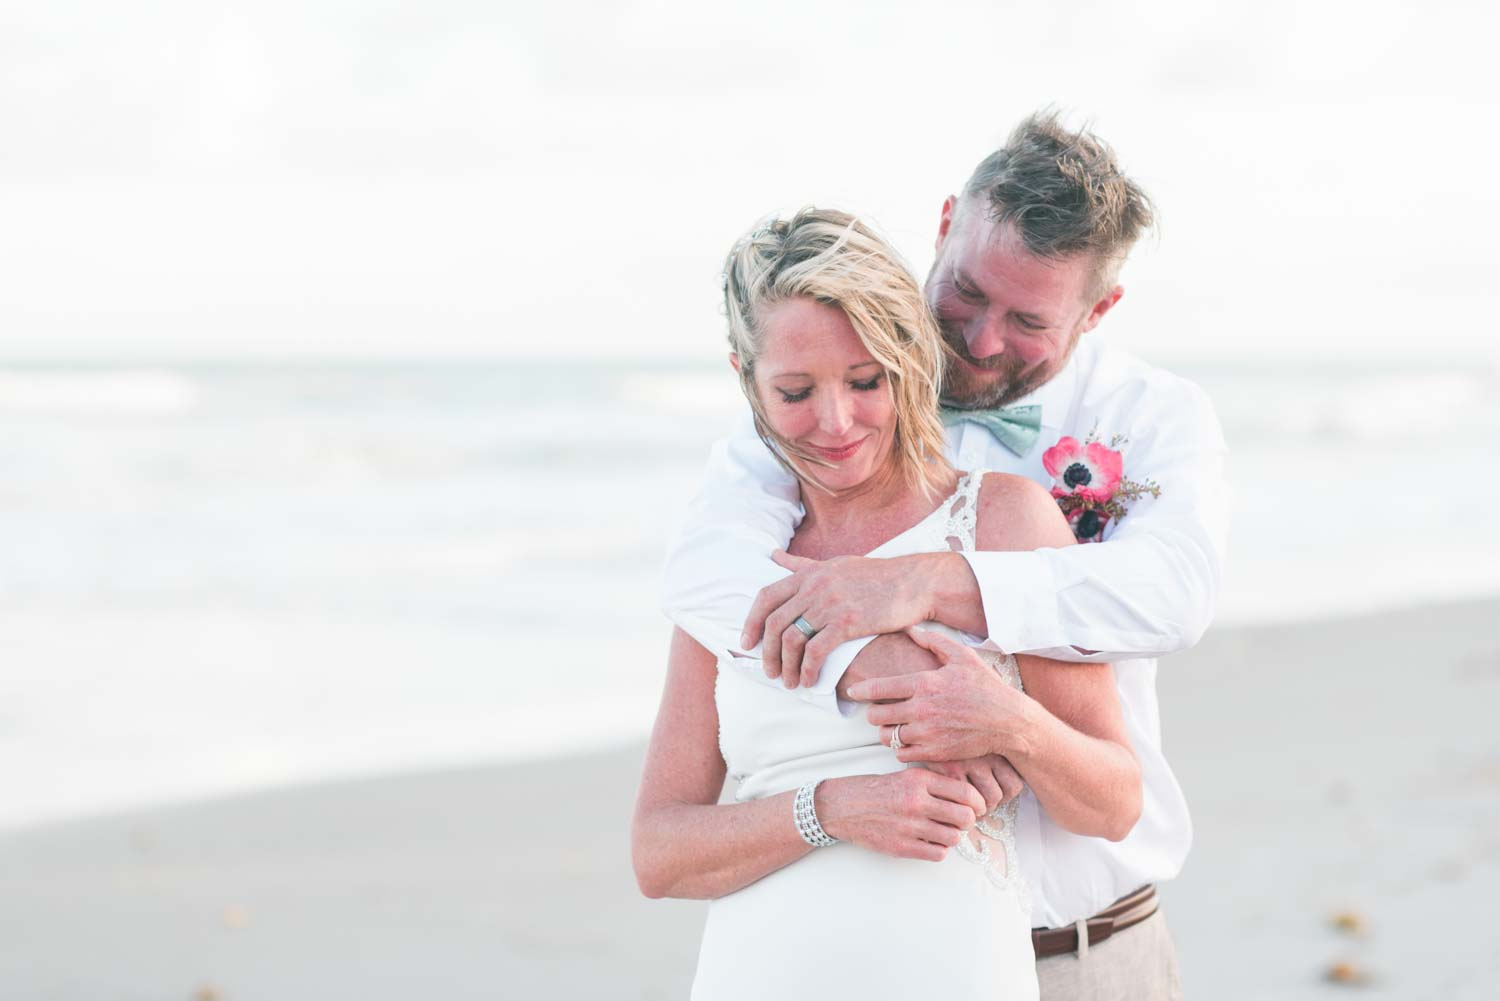 Cape Canaveral Beach Wedding Photographer - Rania Marie Photography-16.jpg